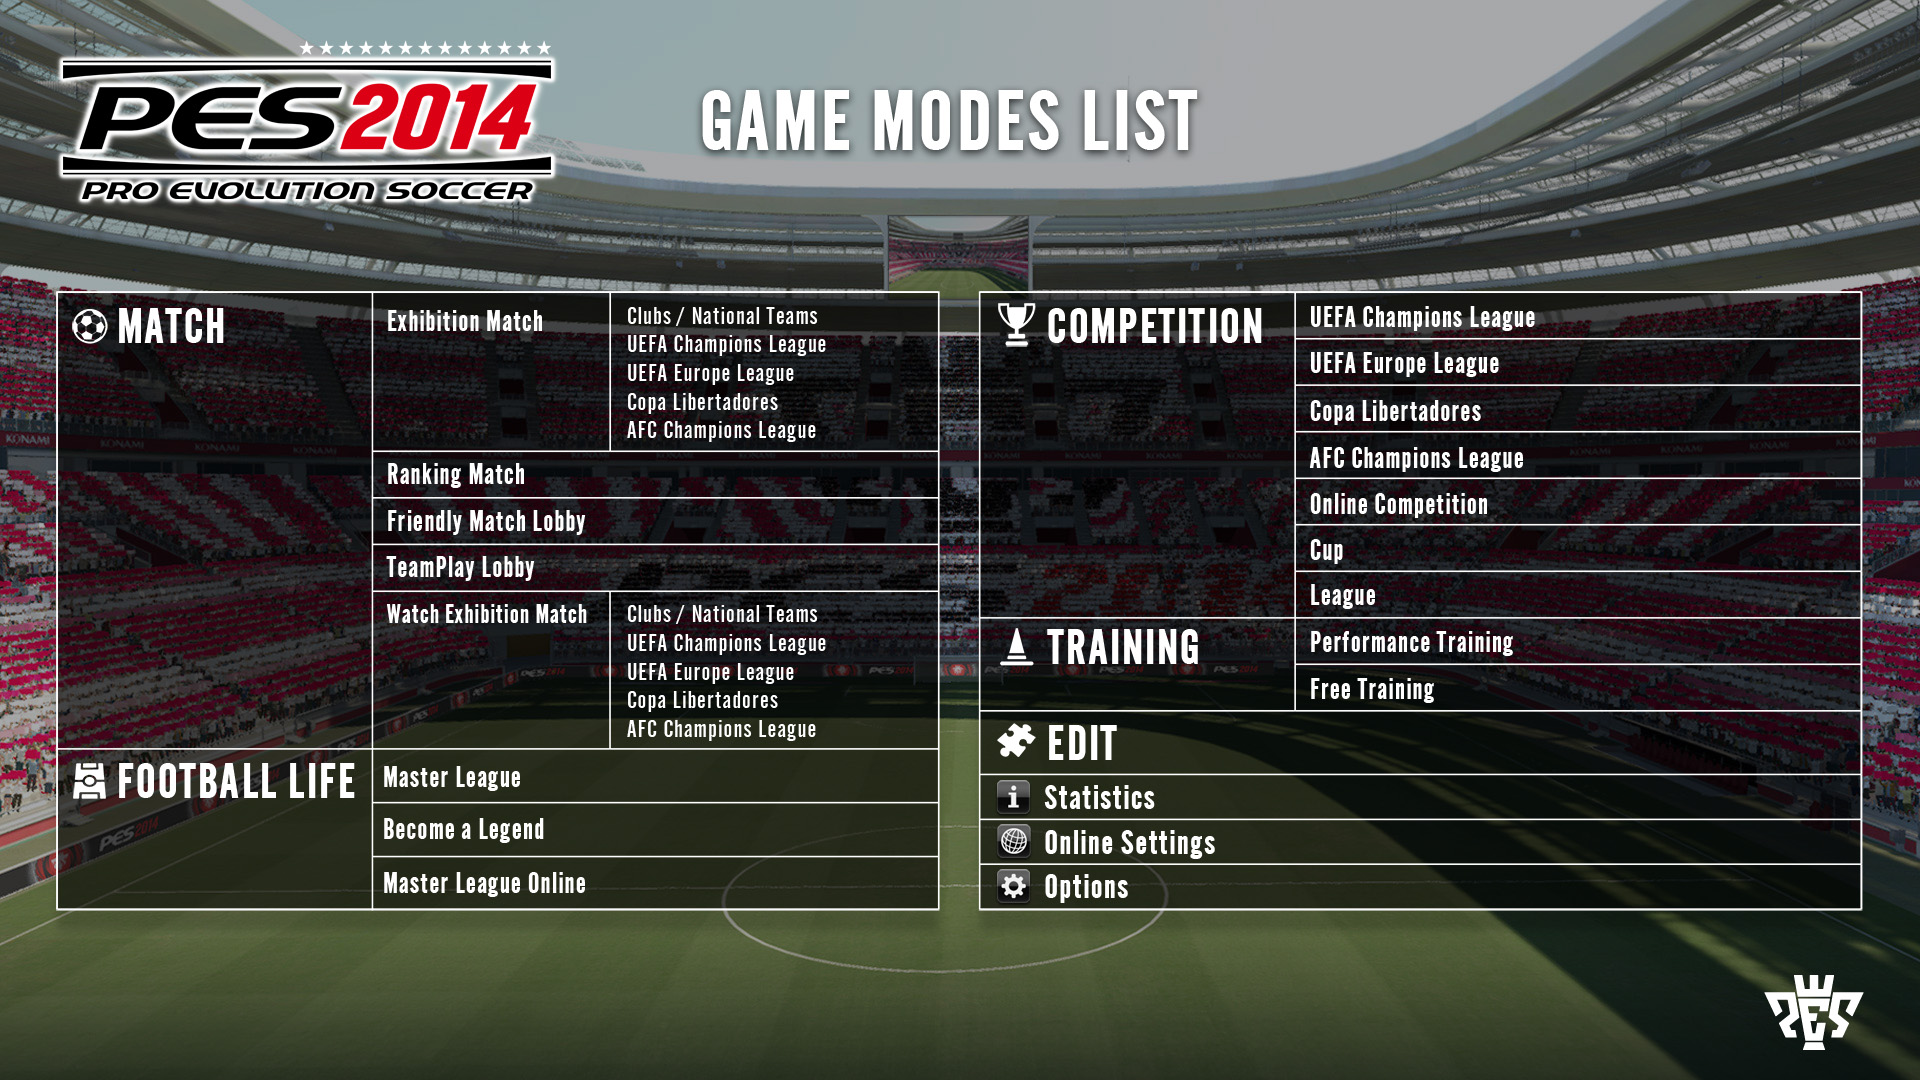 PES 2014 Game Modes List